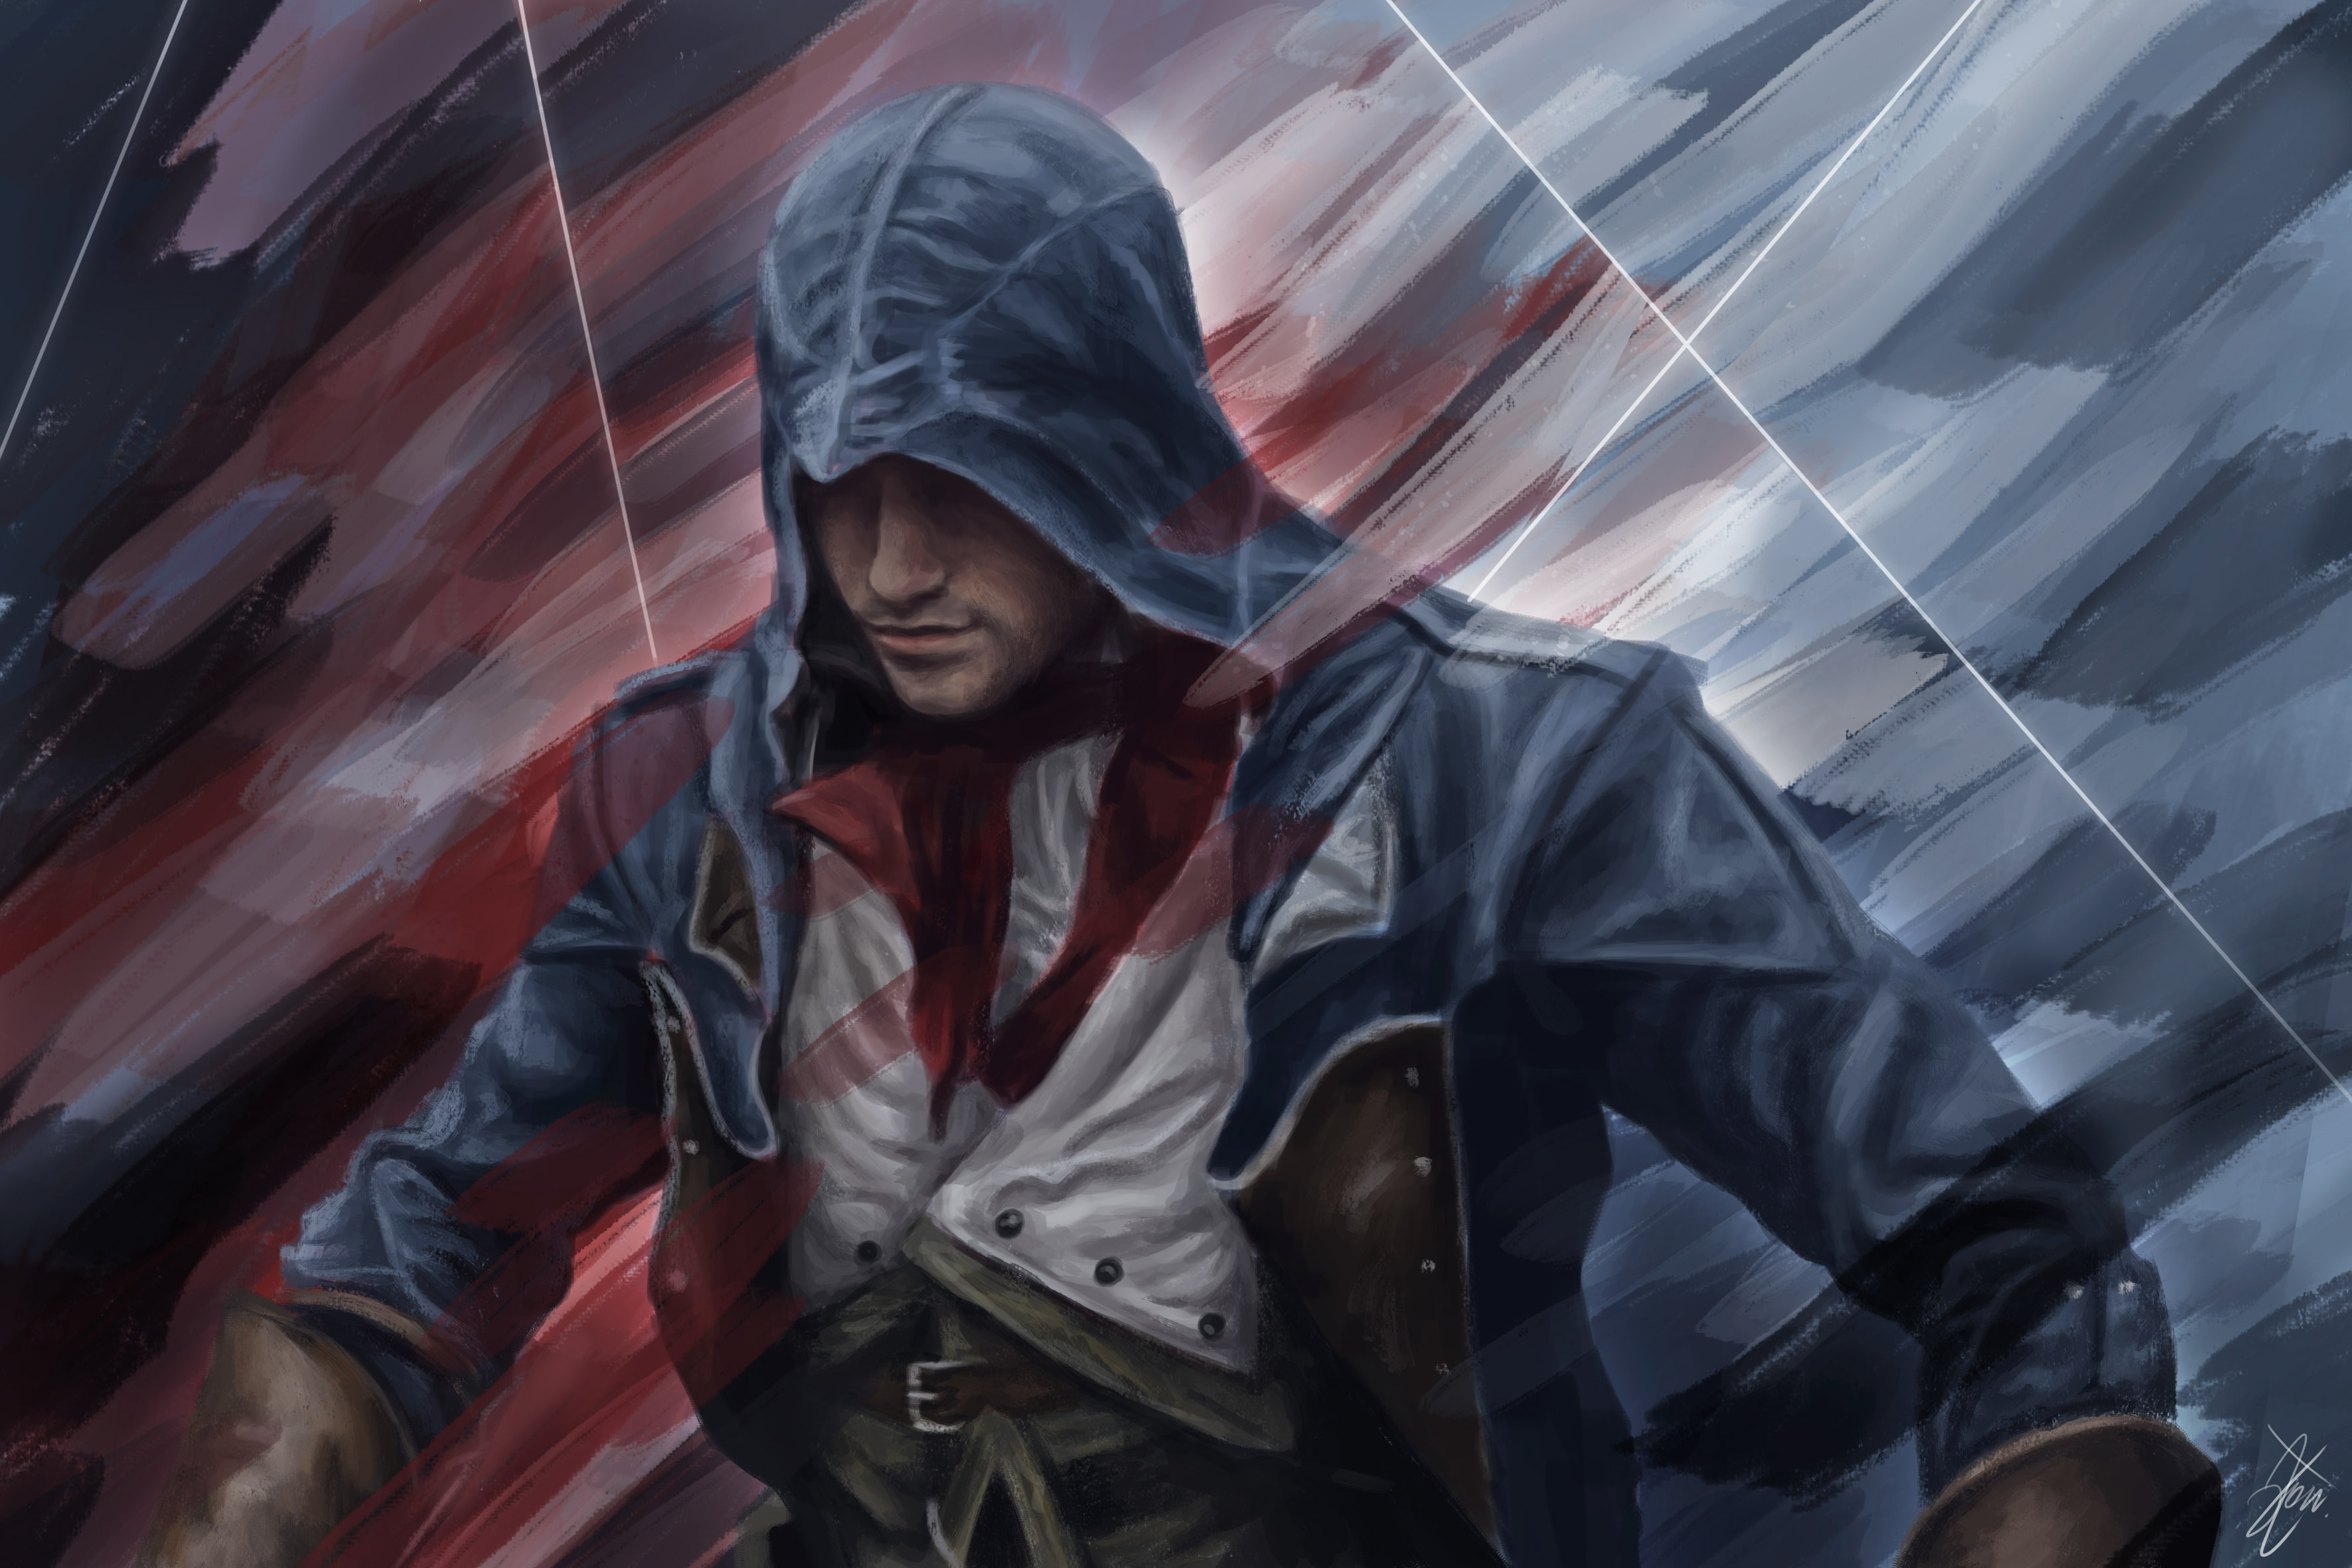 Unite by c0nny hd wallpaper background image 3543x2362 - Assassin s creed unity wallpaper ...